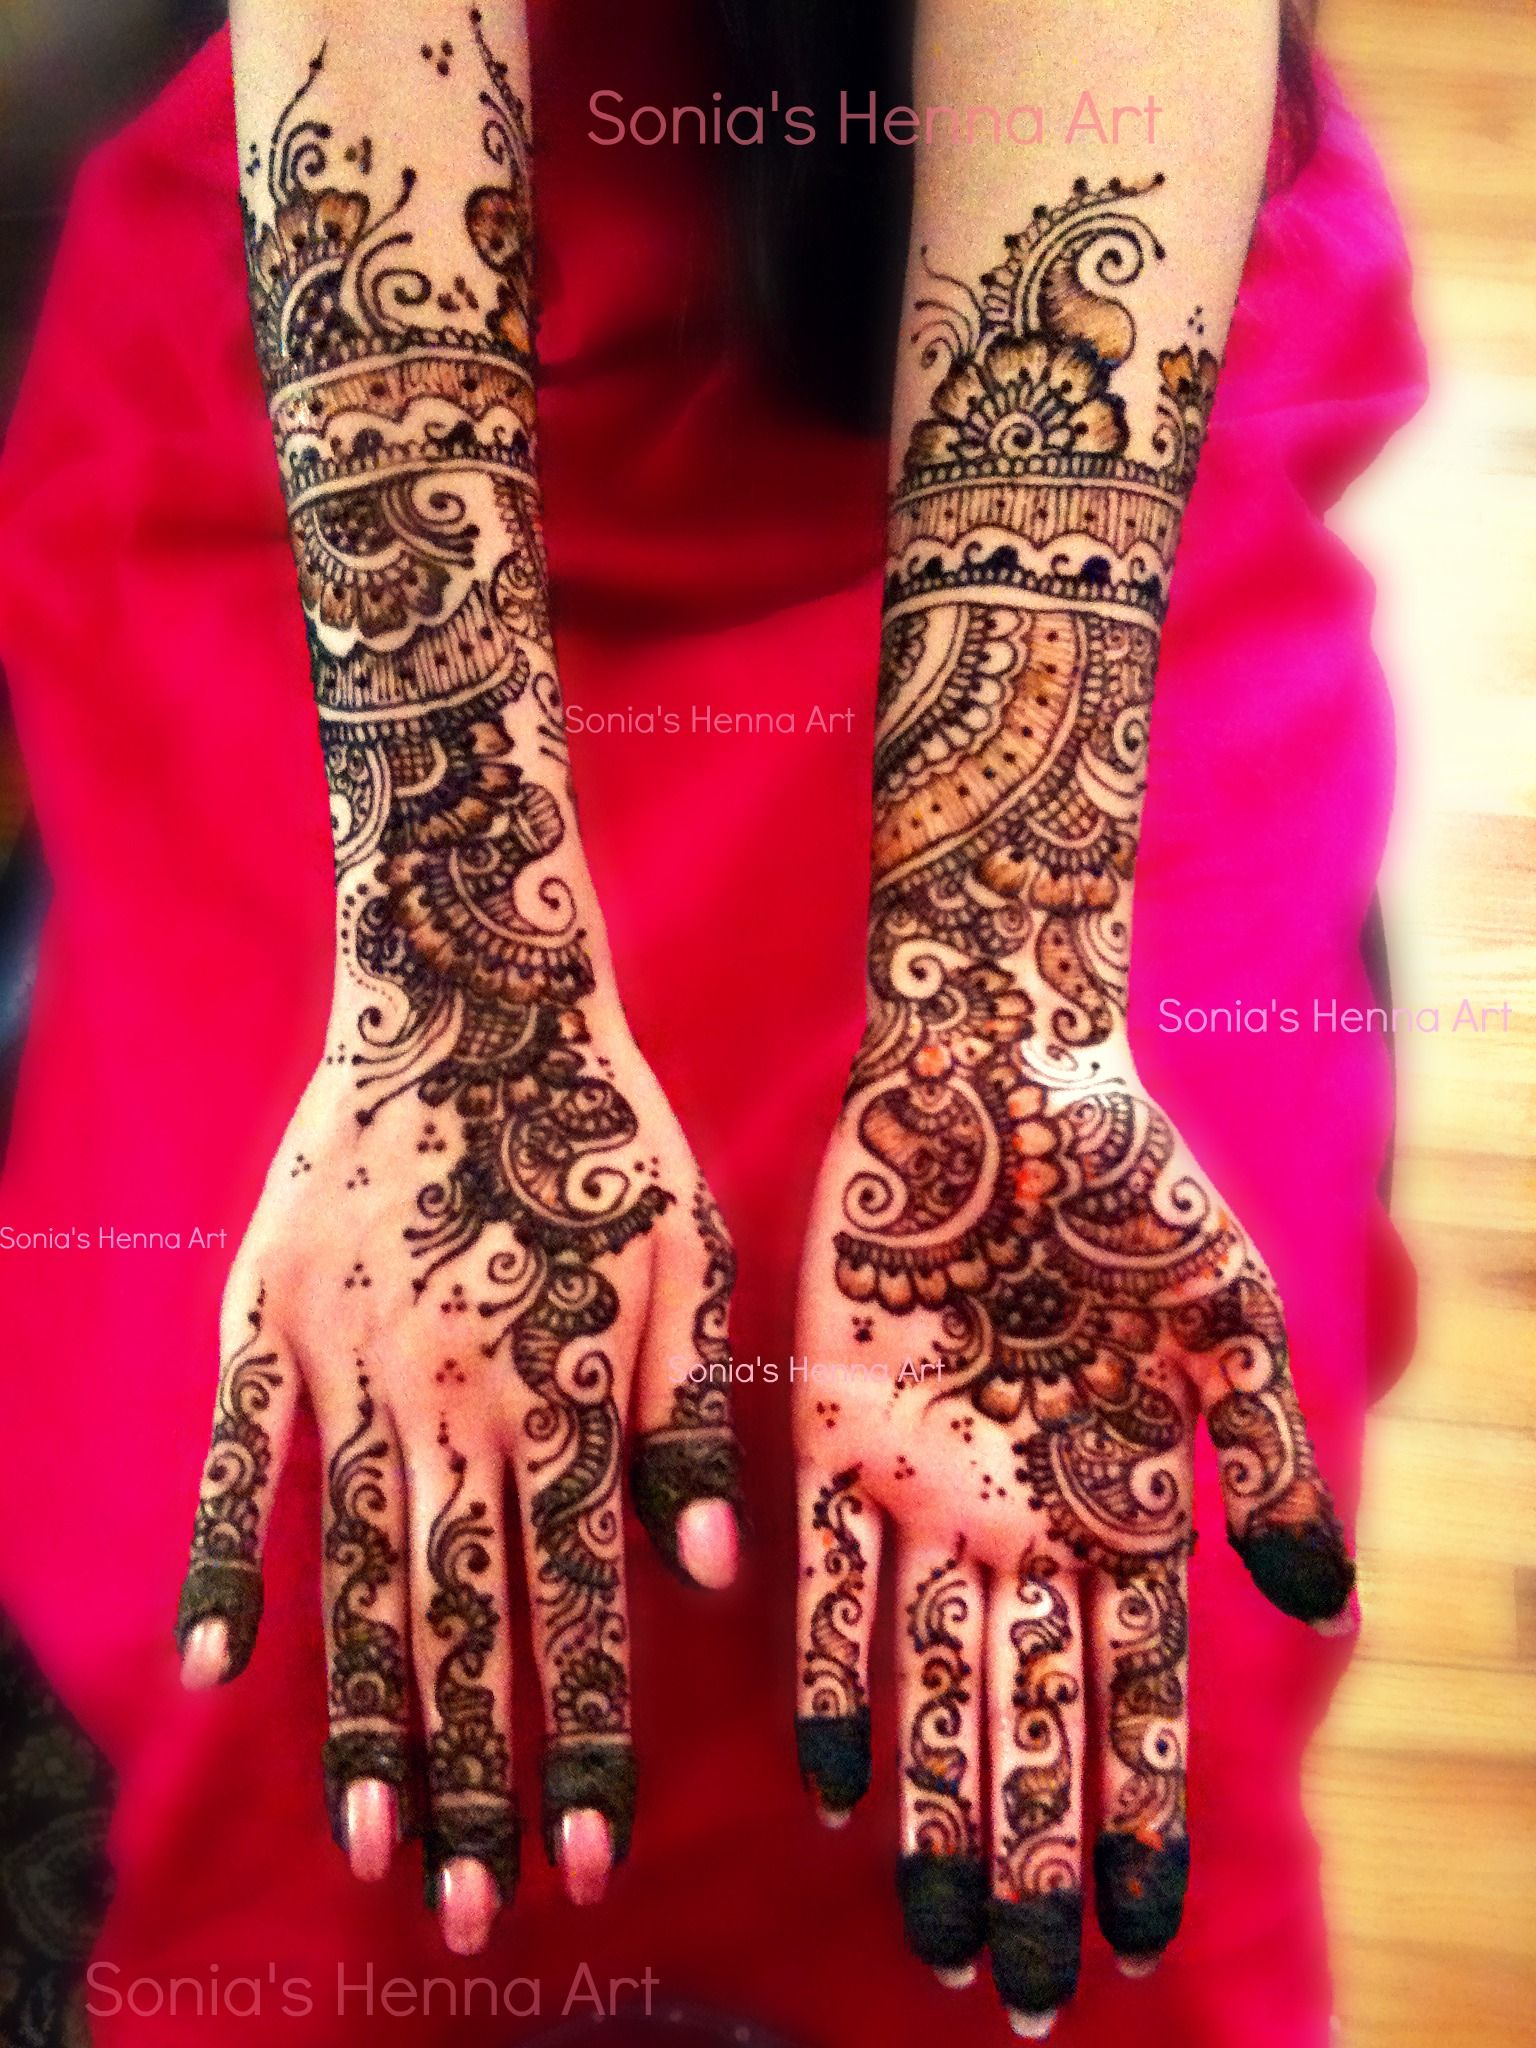 tags of mehndi service in toronto scarborough destination wedding henna artist henna tattoo. Black Bedroom Furniture Sets. Home Design Ideas